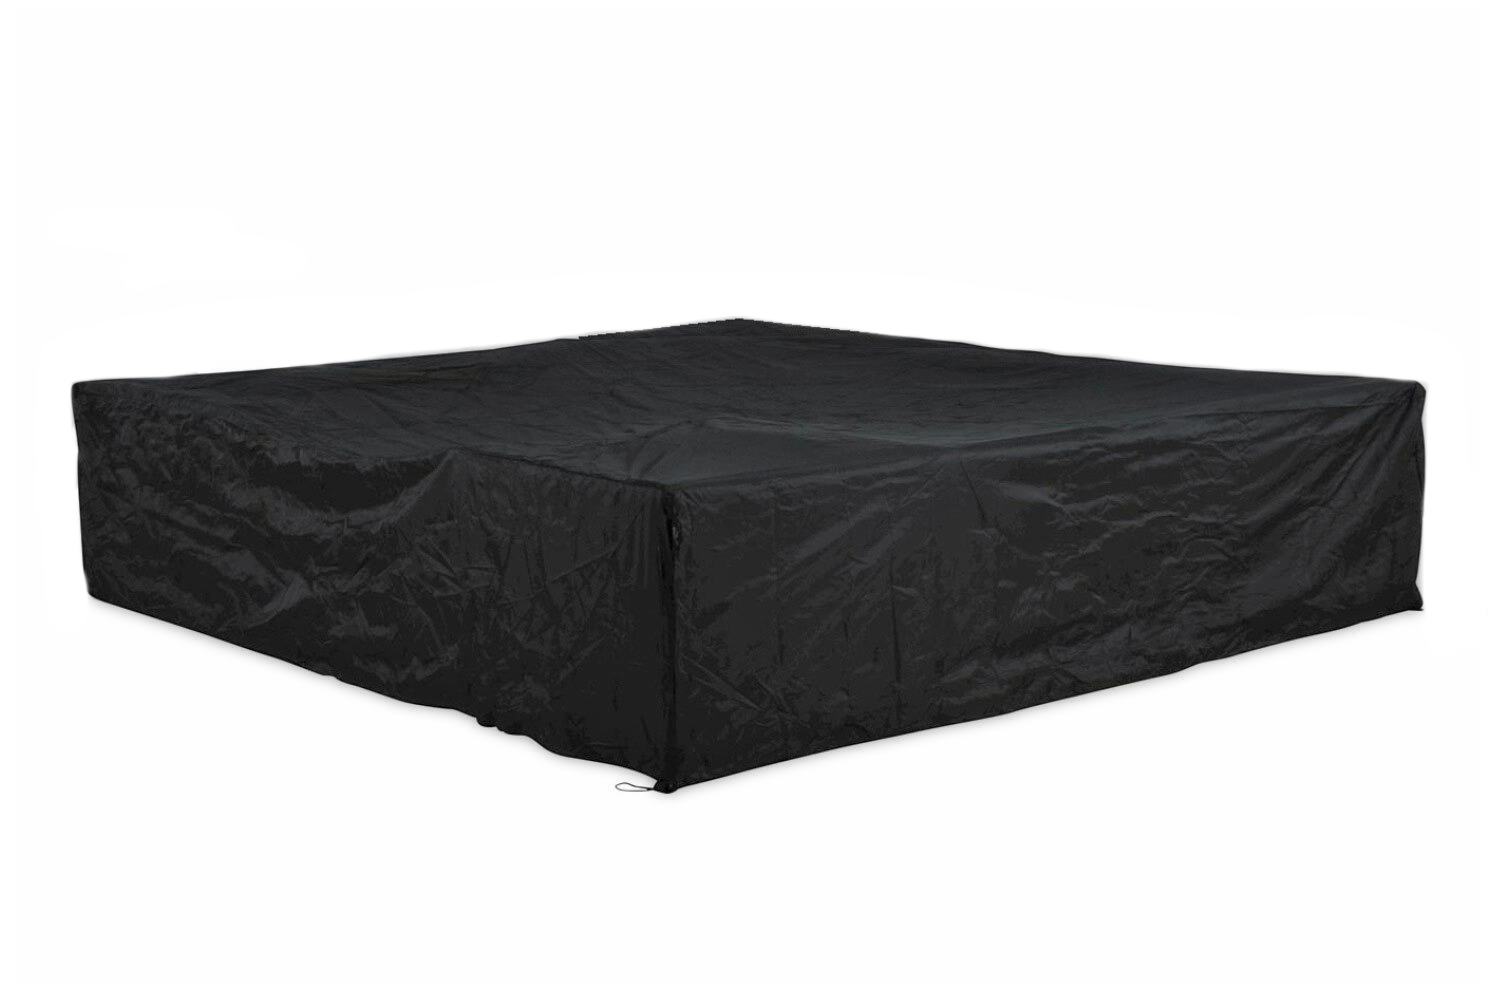 Outdoor Cover loungesethoes 275 x 275 x (h) 70 cm